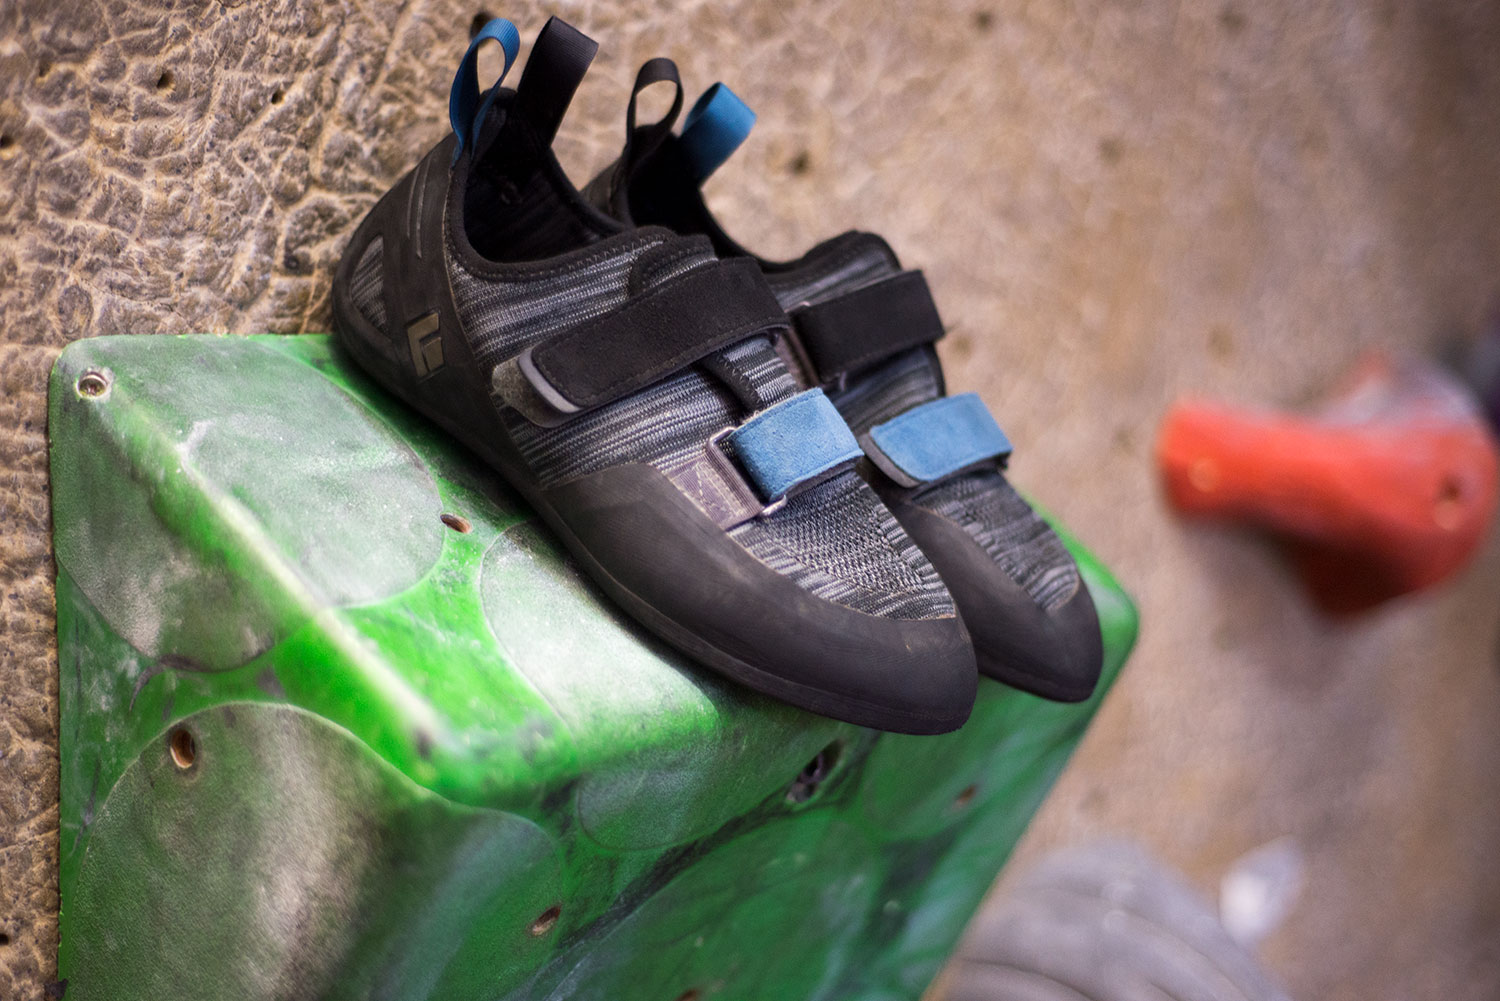 61dbc4a69fc Knit Comfort  Black Diamond s First Climbing Shoe Reviewed